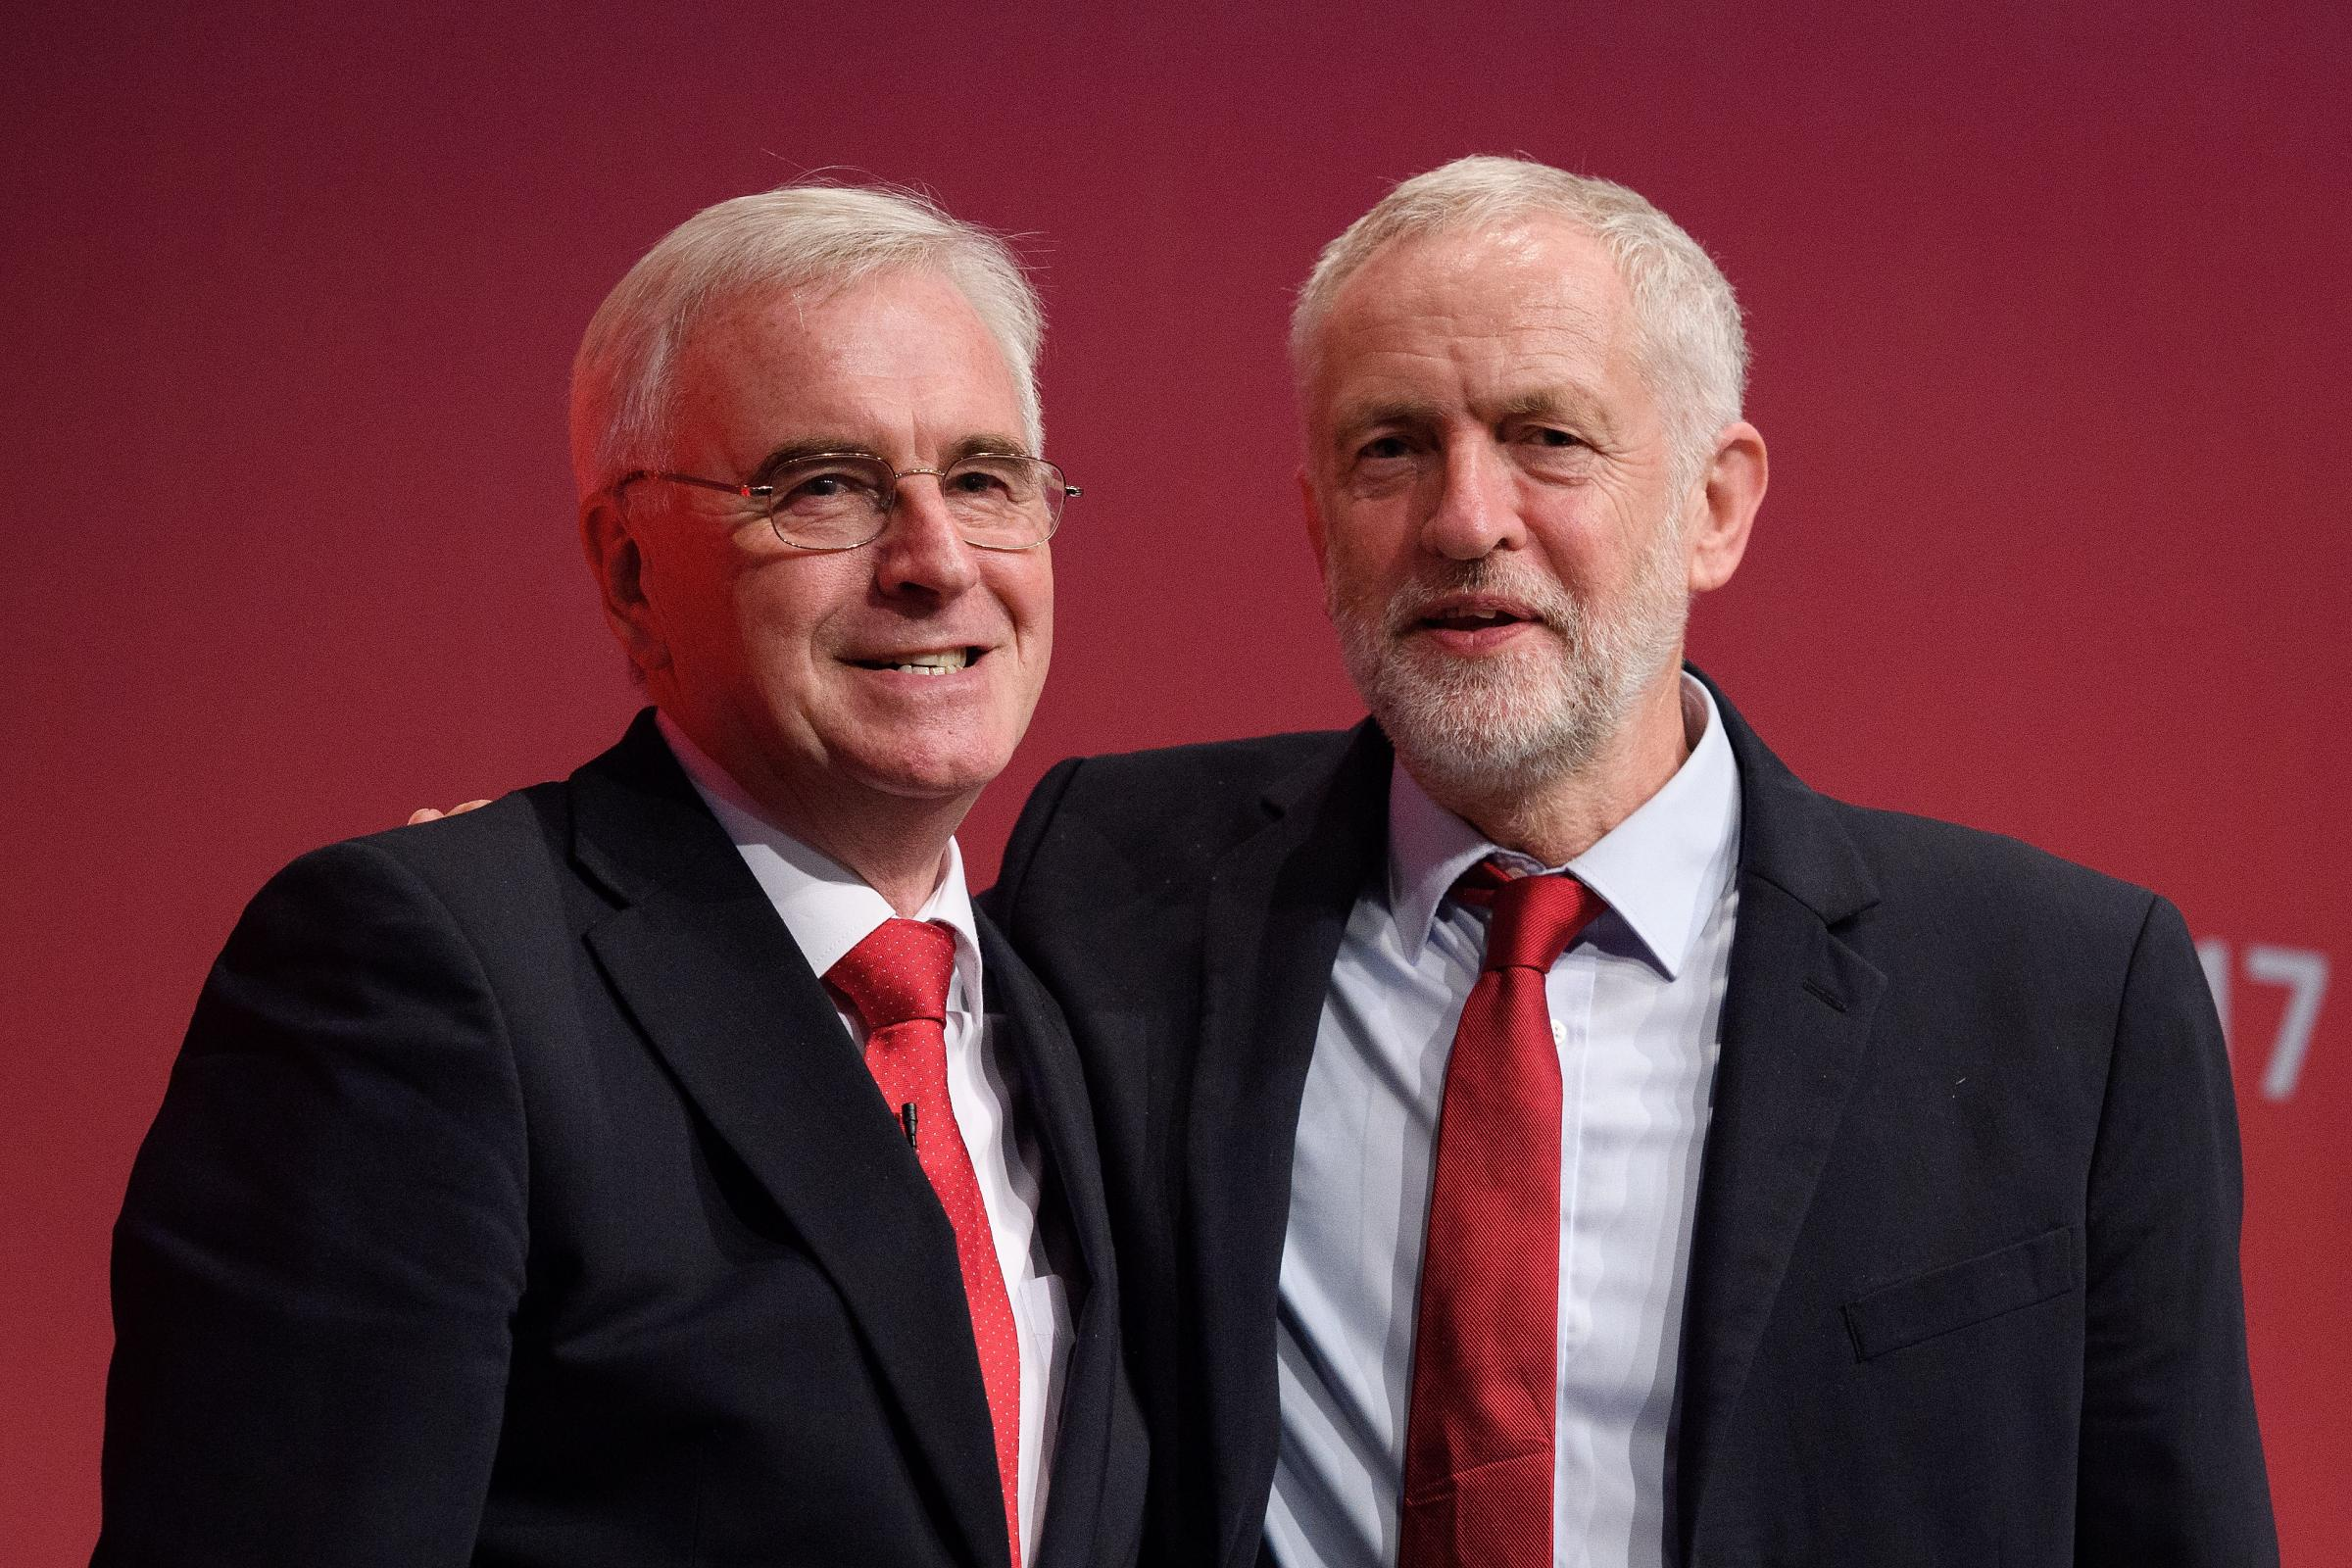 Comradely? Labour leadership says nothing untoward about local parties expressing concern about sitting MPs